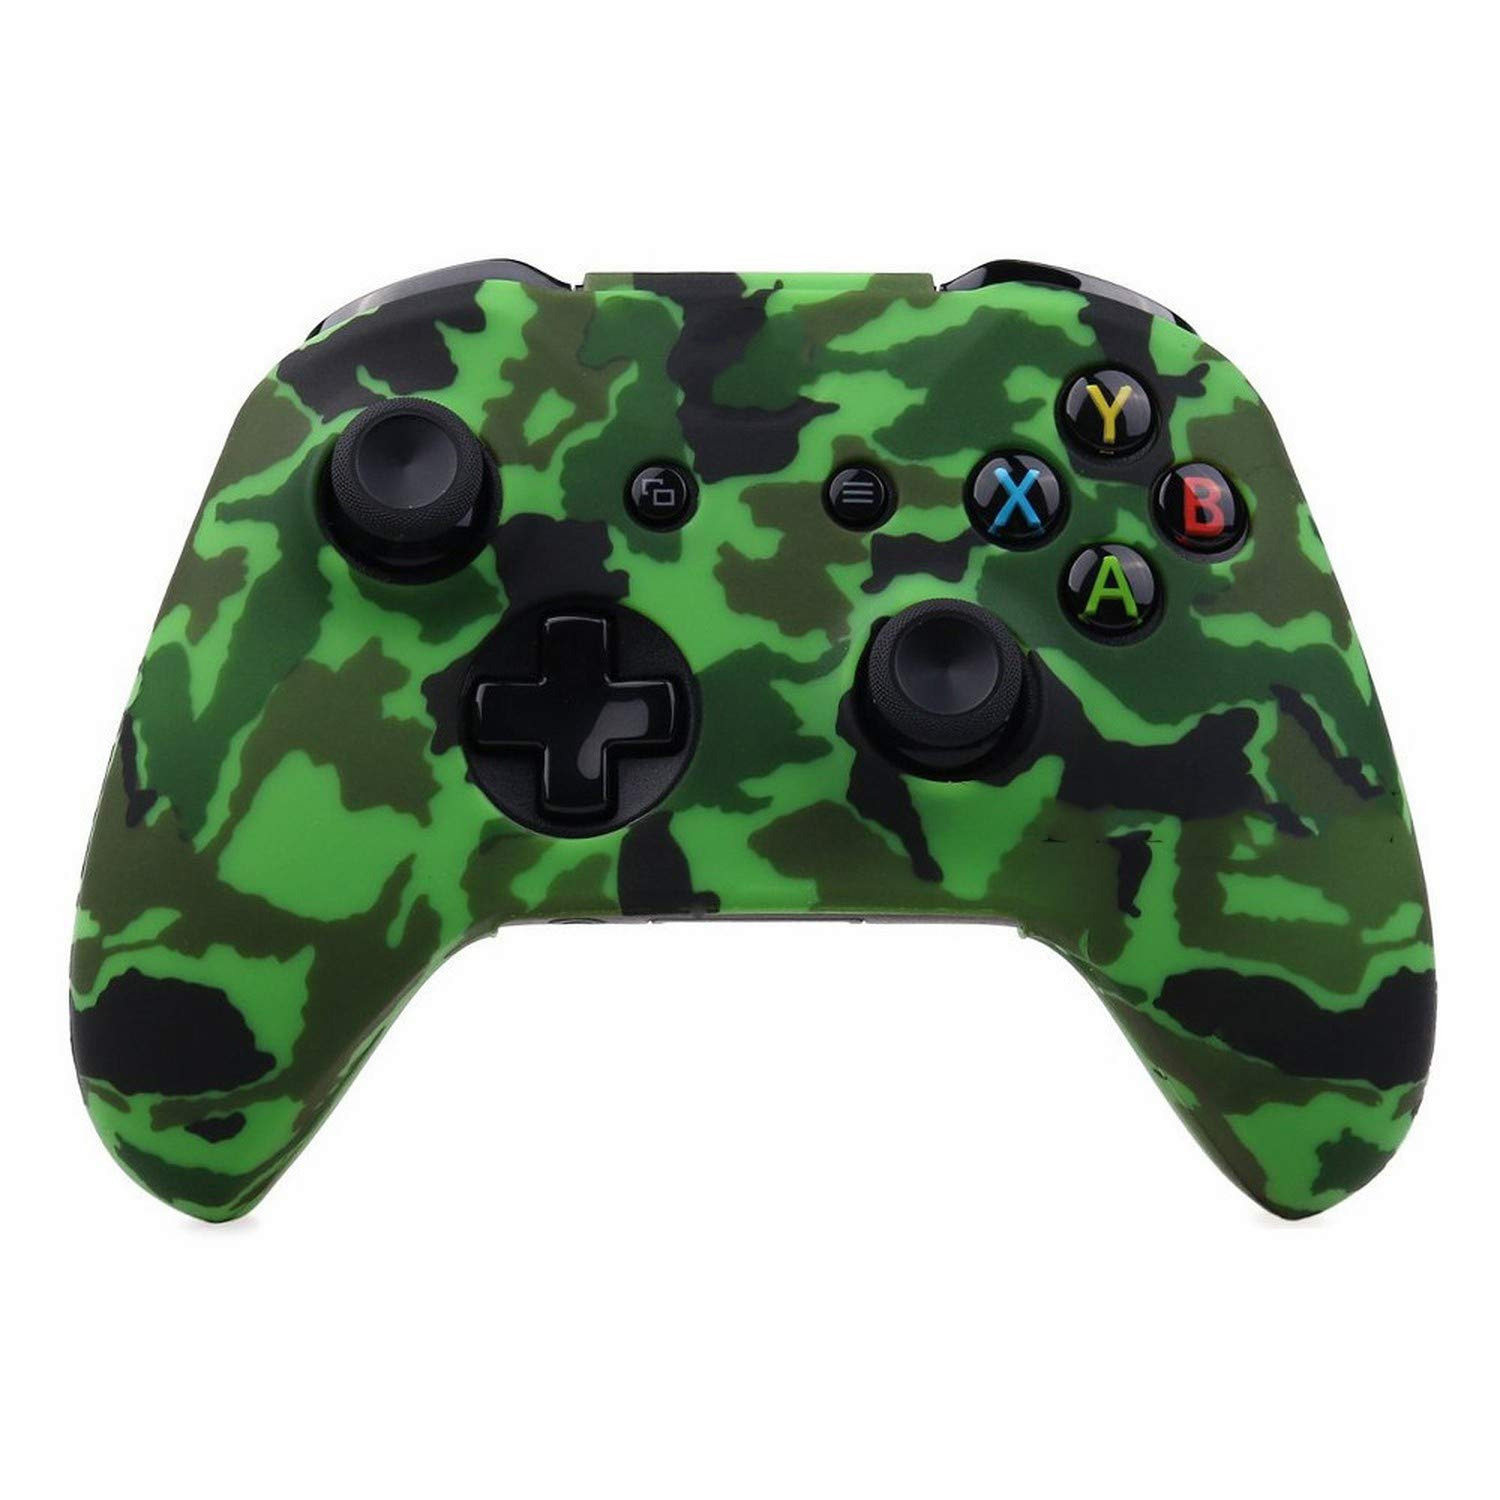 Silicone Protective Skin Case for XBox One X S Controller Protector Water Transfer Printing Camouflage Cover Grips Caps,Green Camo